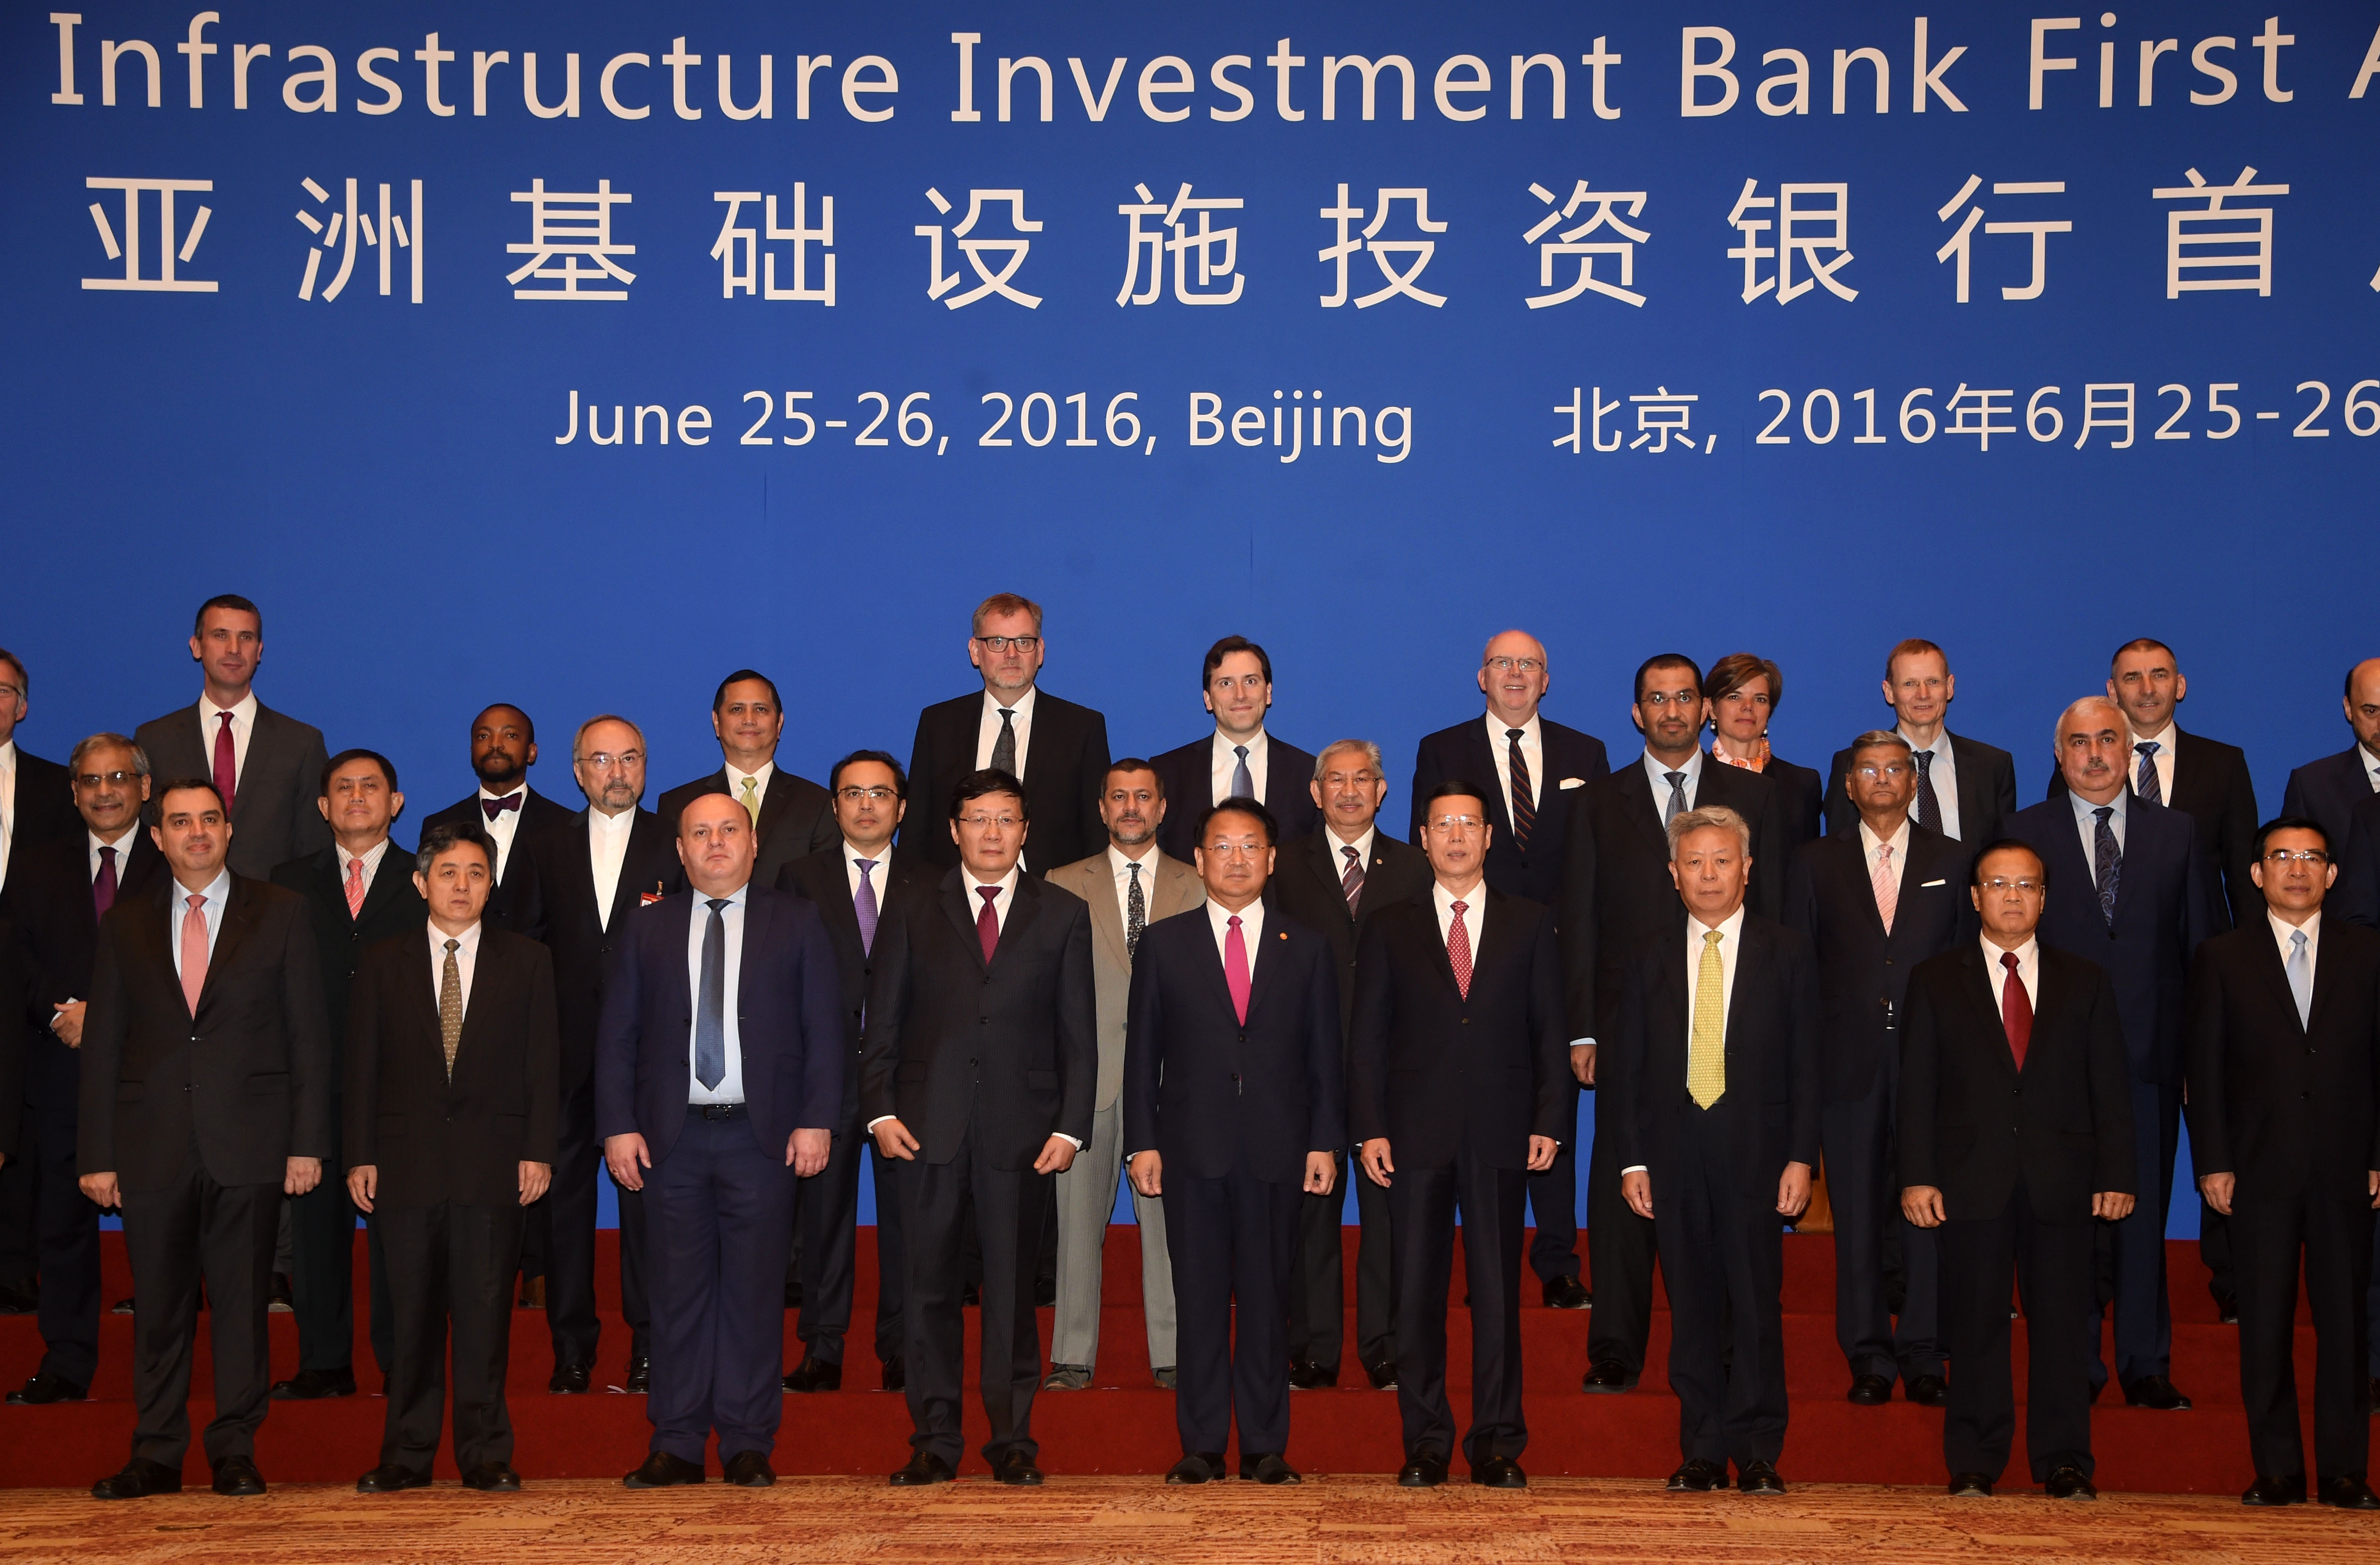 Deputy Prime Minister Yoo poses for first AIIB Annual Meeting group photo